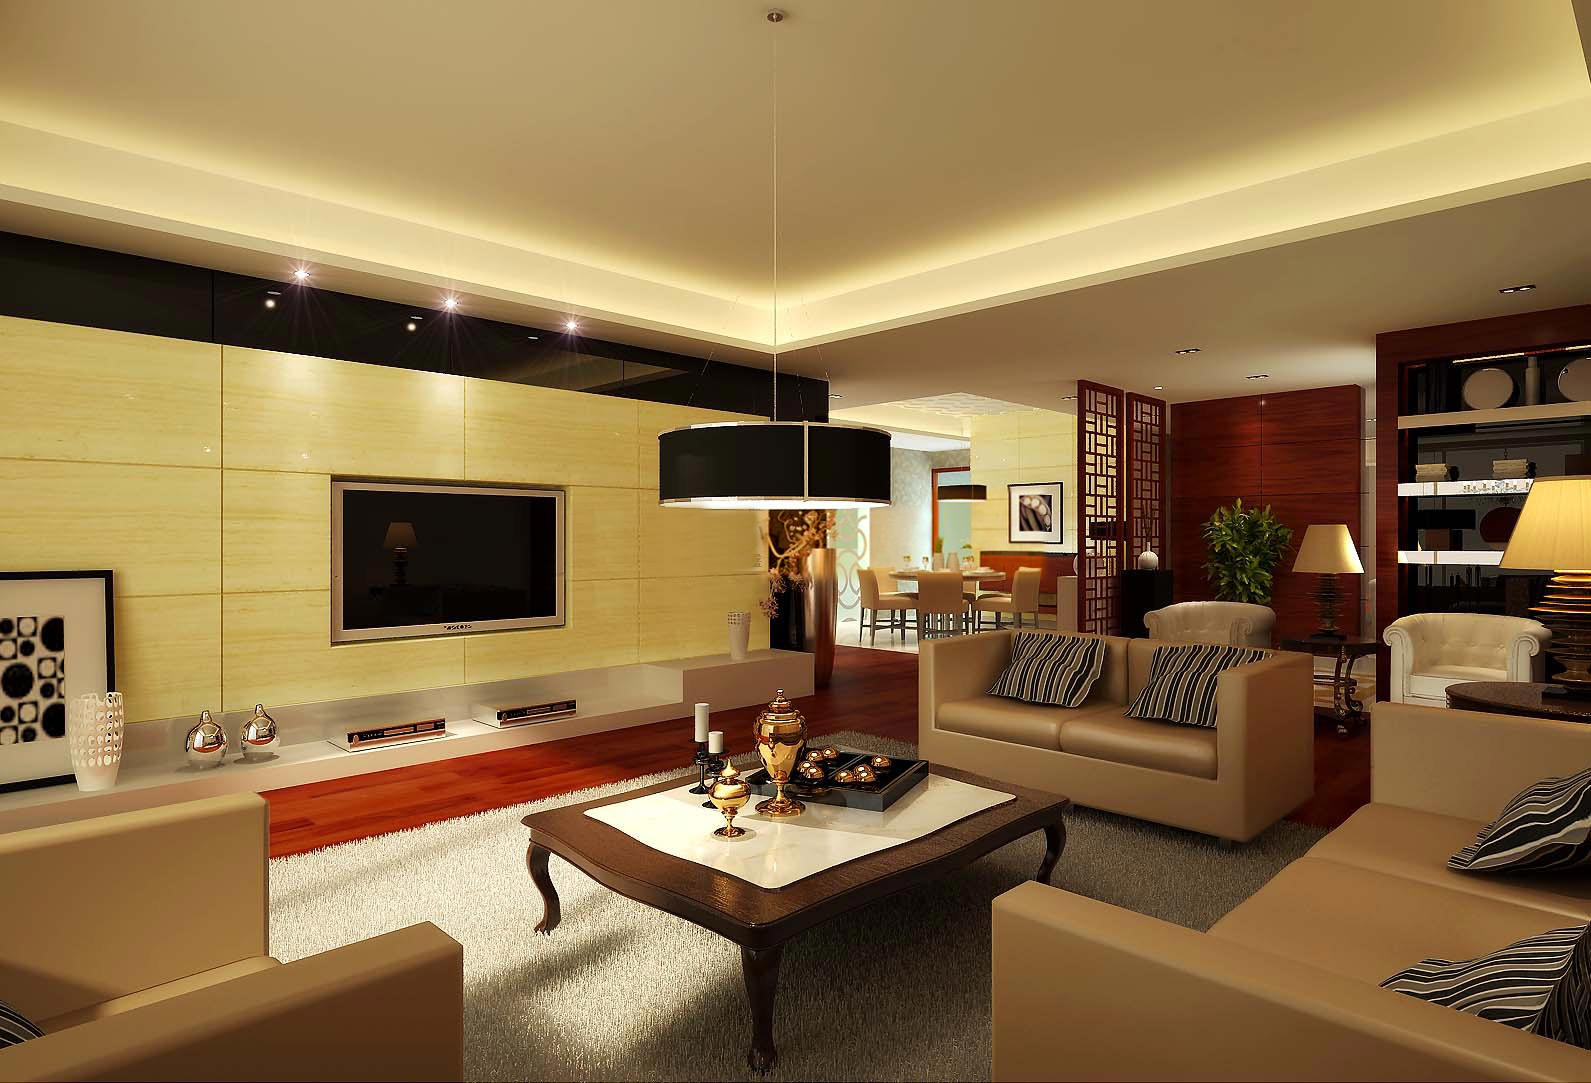 drawing room furniture images. Drawing Room With Lavish Furniture 3d Model Max 1 Images F